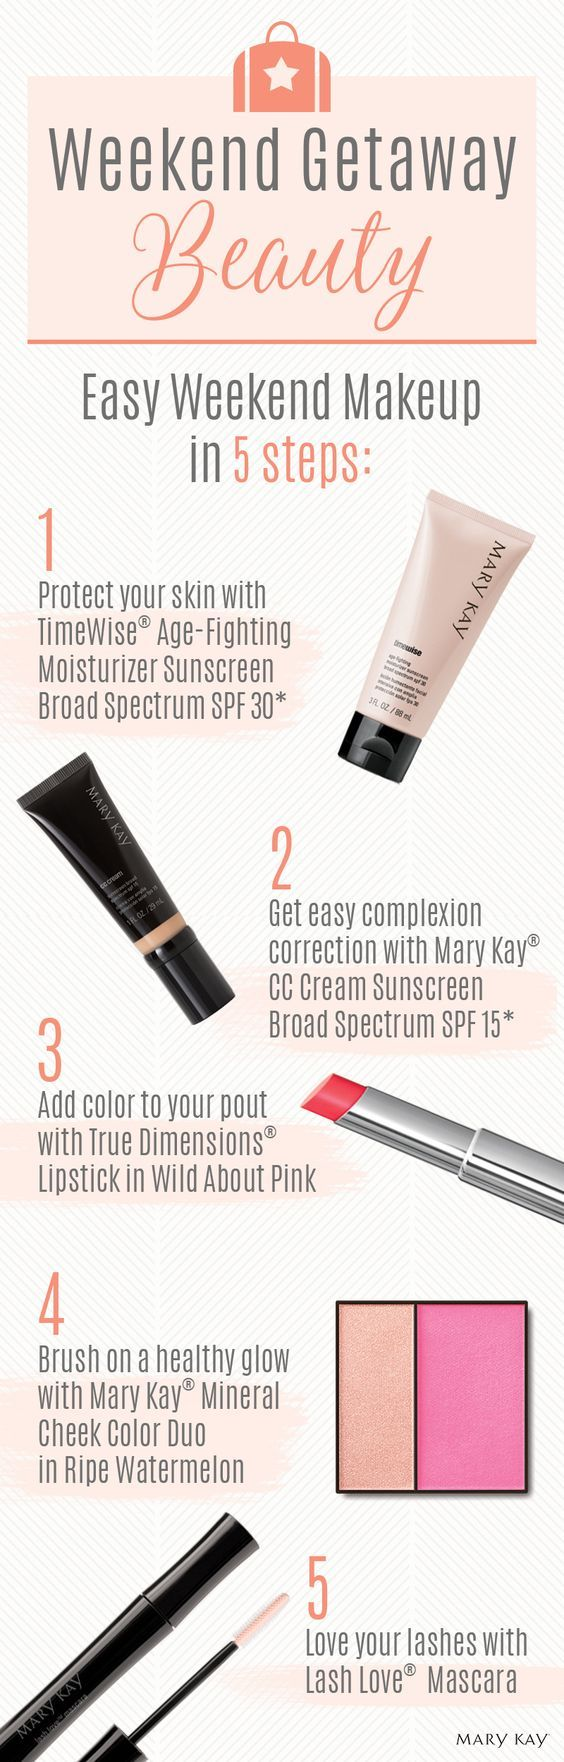 Ready to pack your makeup bag for a weekend getaway? From mascara to lipstick to sunscreen, these 5 travel must-haves will have you feeling gorgeous while on-the-go! | Mary Kay (Favorite Lipstick Mary Kay)